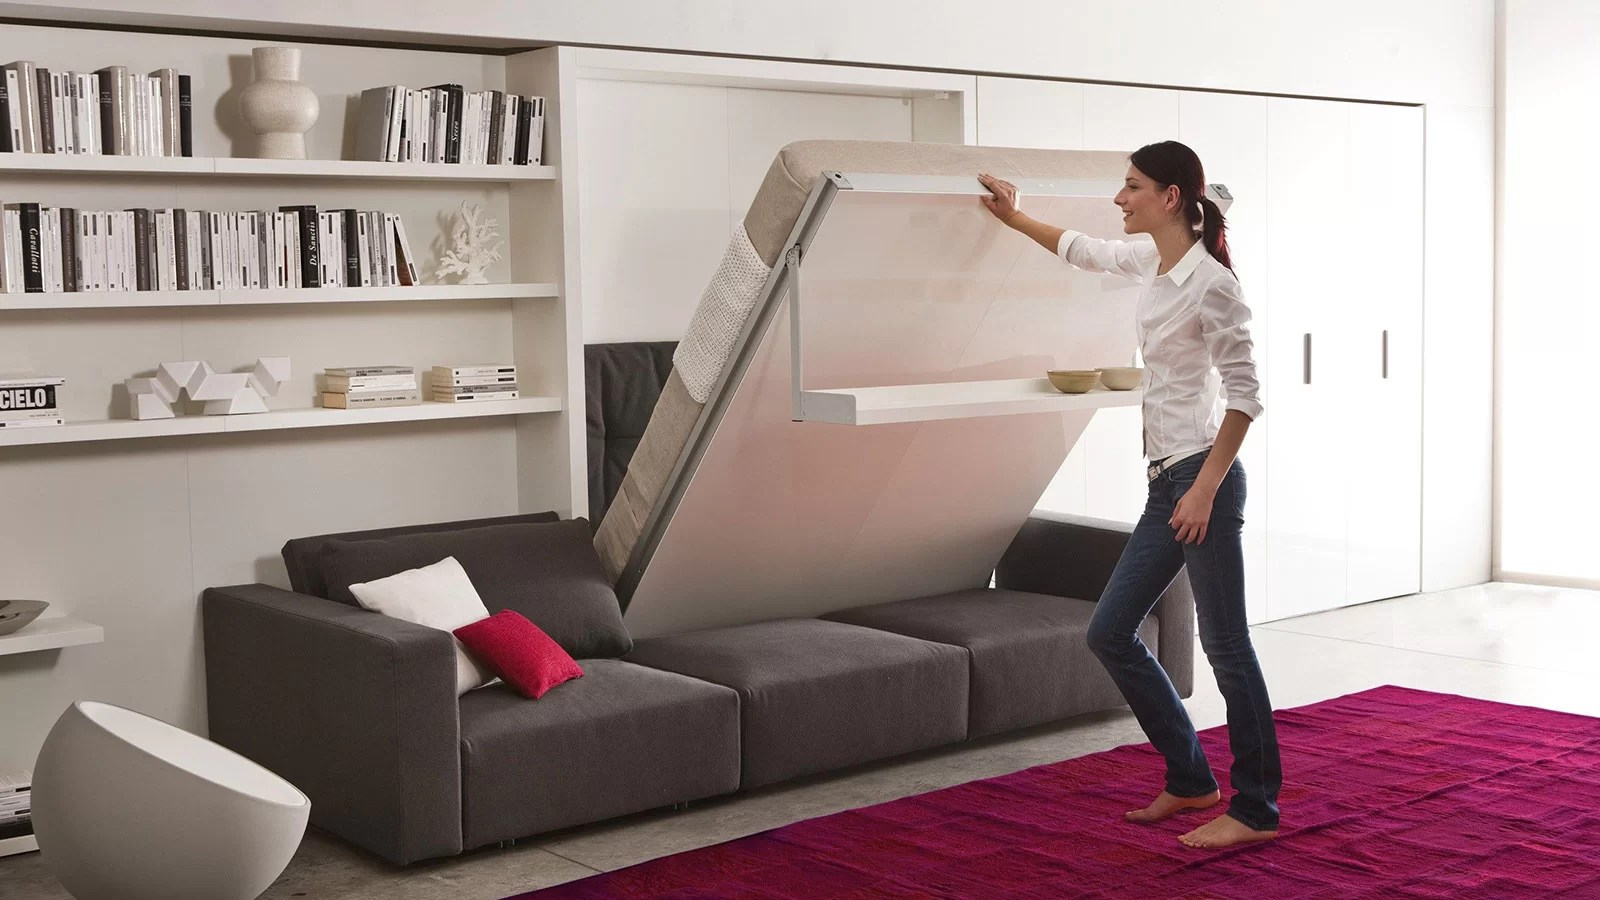 These 10 Modern Murphy Beds Will Help You Maximize Space In Your Small Home 10 Stunning Homes